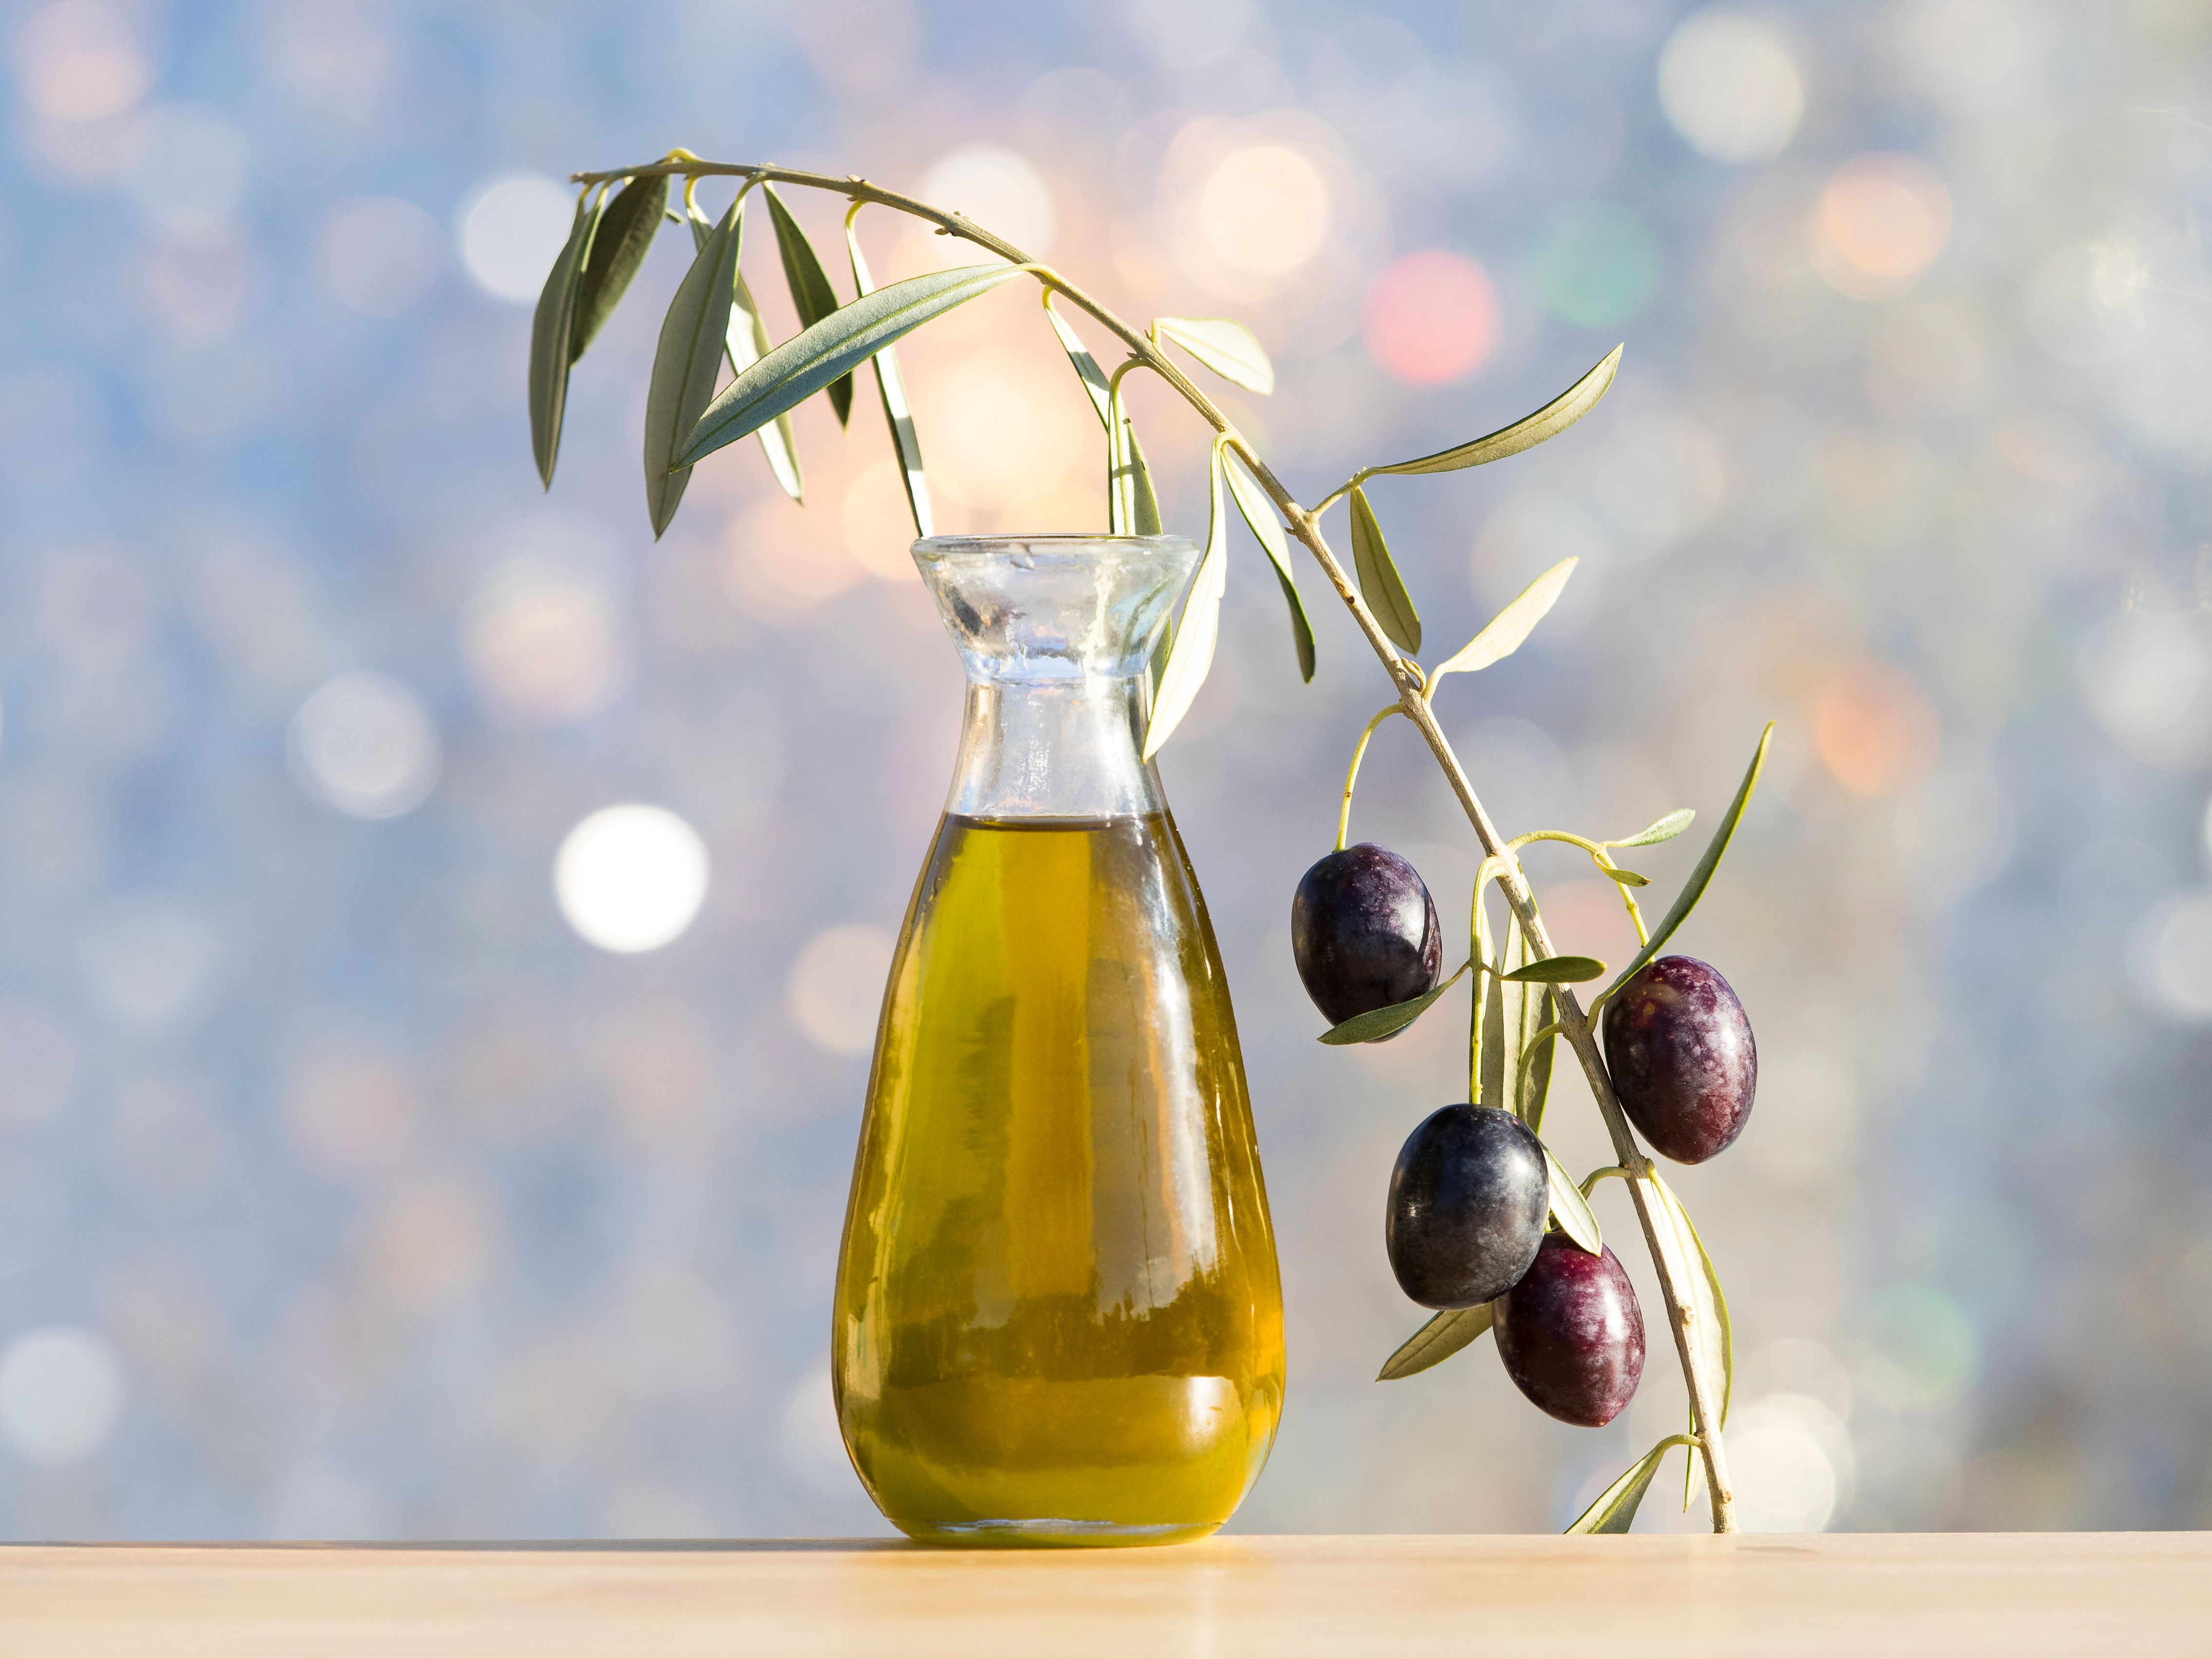 This Is Why Some Olive Oils Sell For $5 And Others Cost